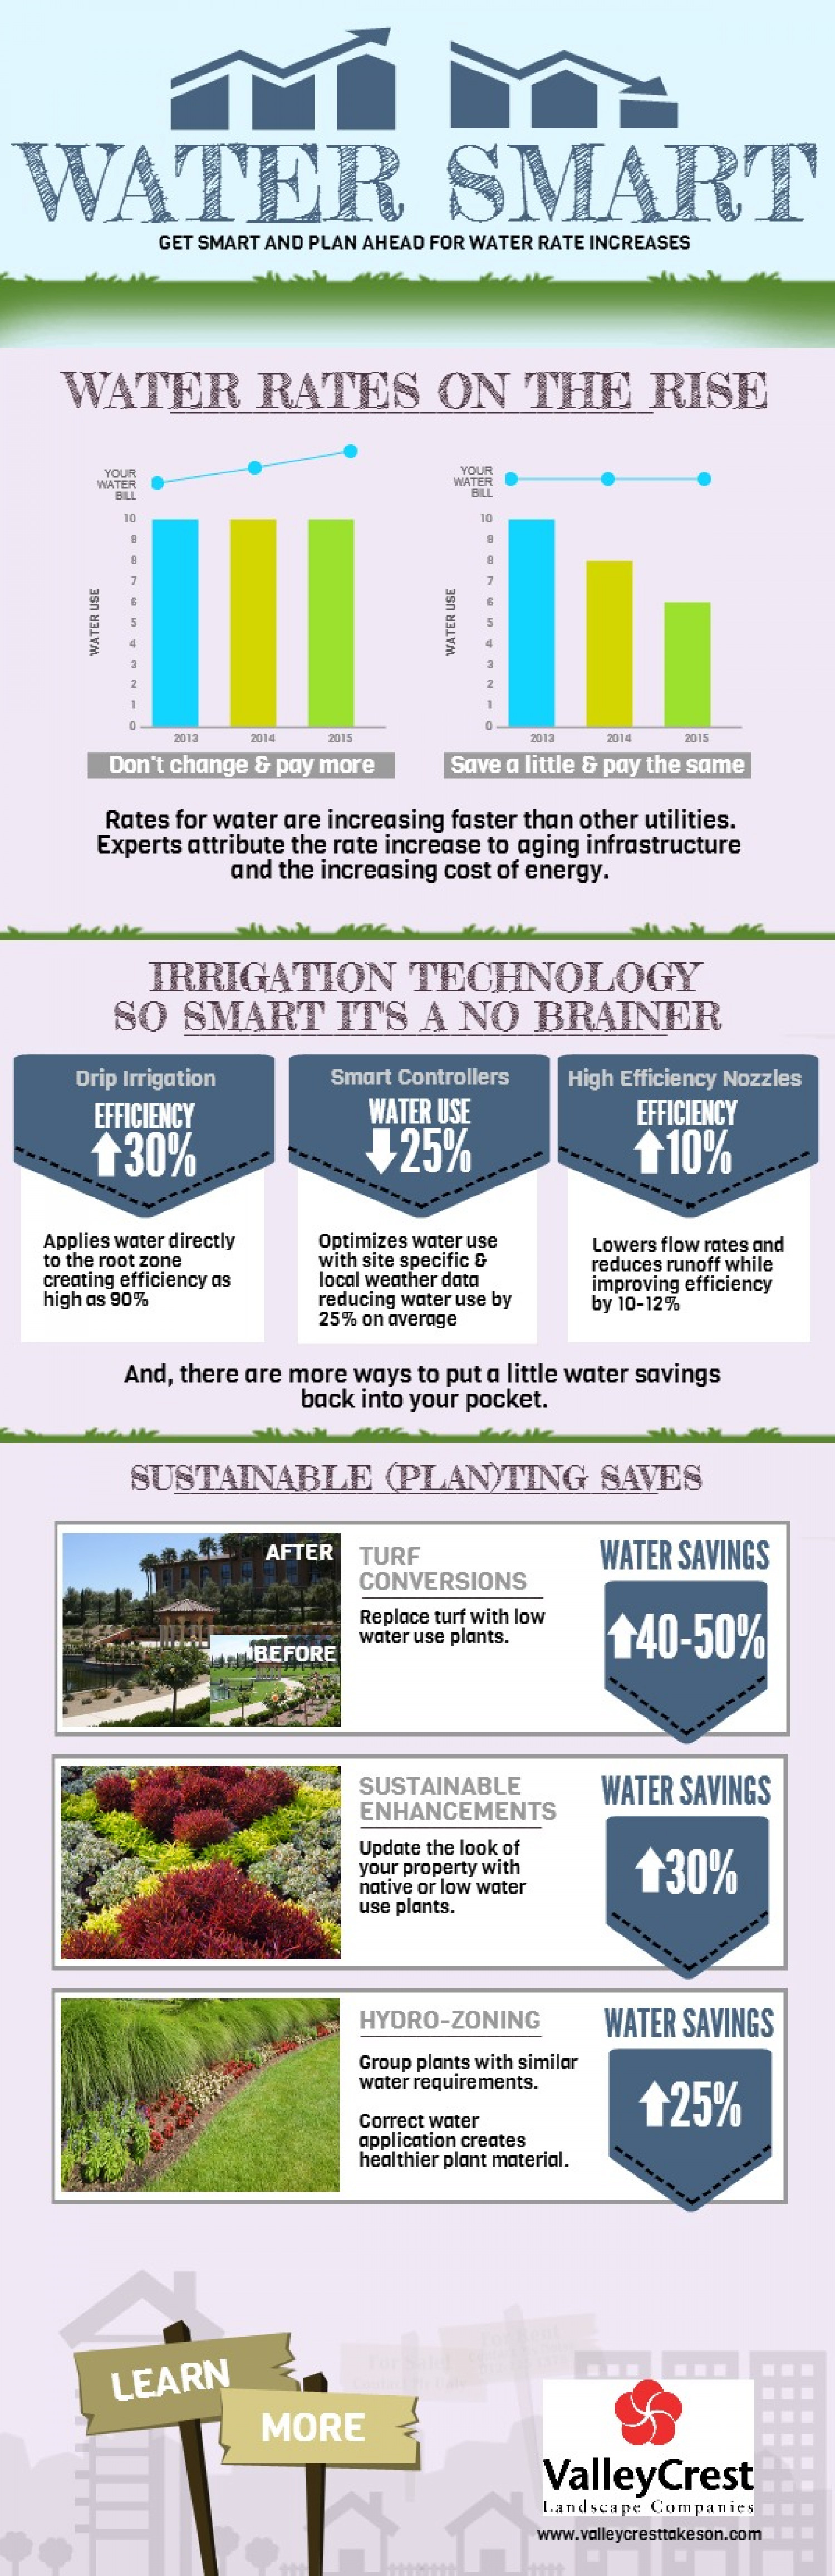 Water Rates on the Rise: 6 Ways To Save Water Infographic